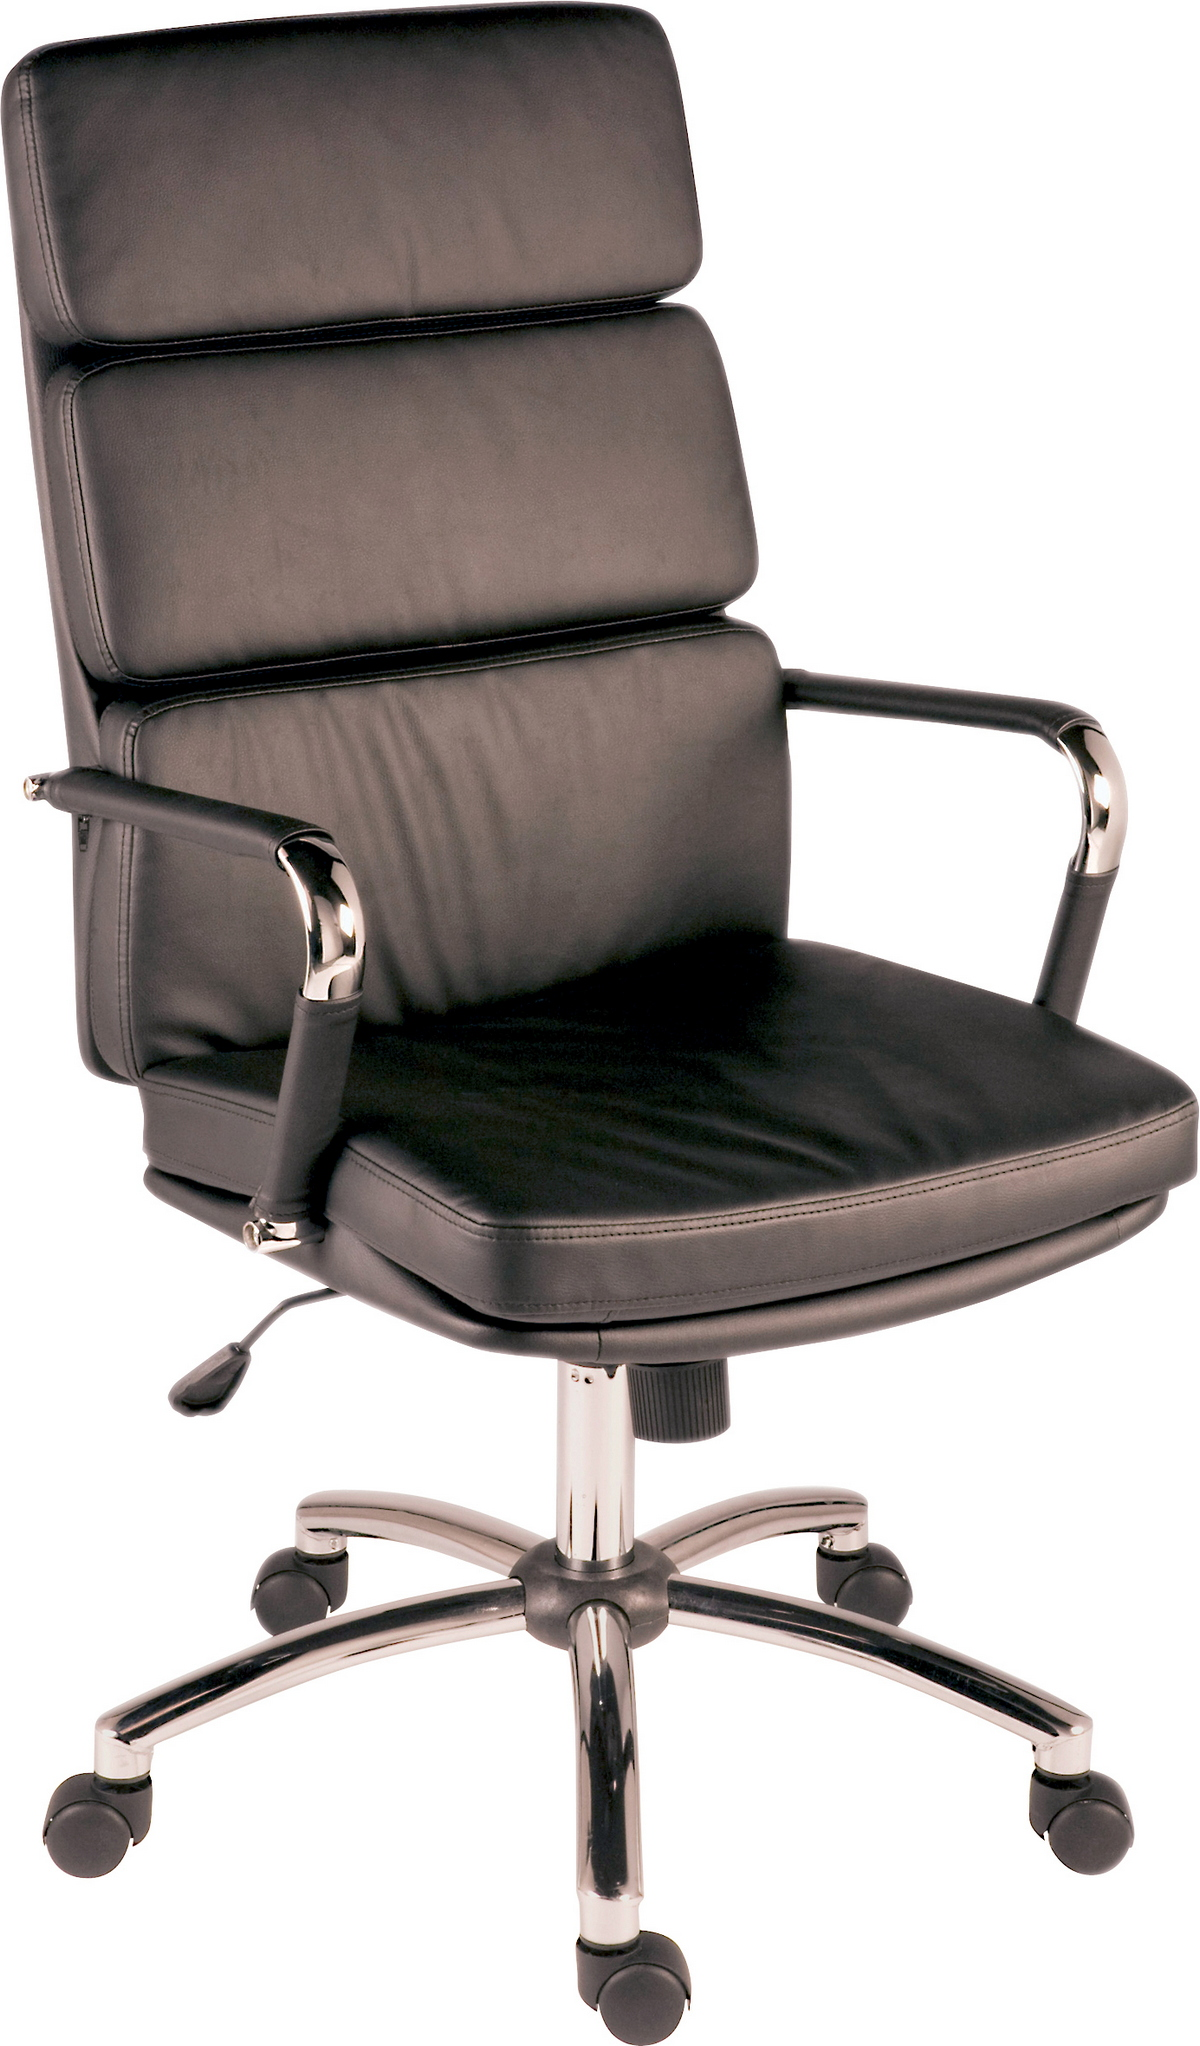 Budget Eames style padded faux leather office executive swivel chair Red